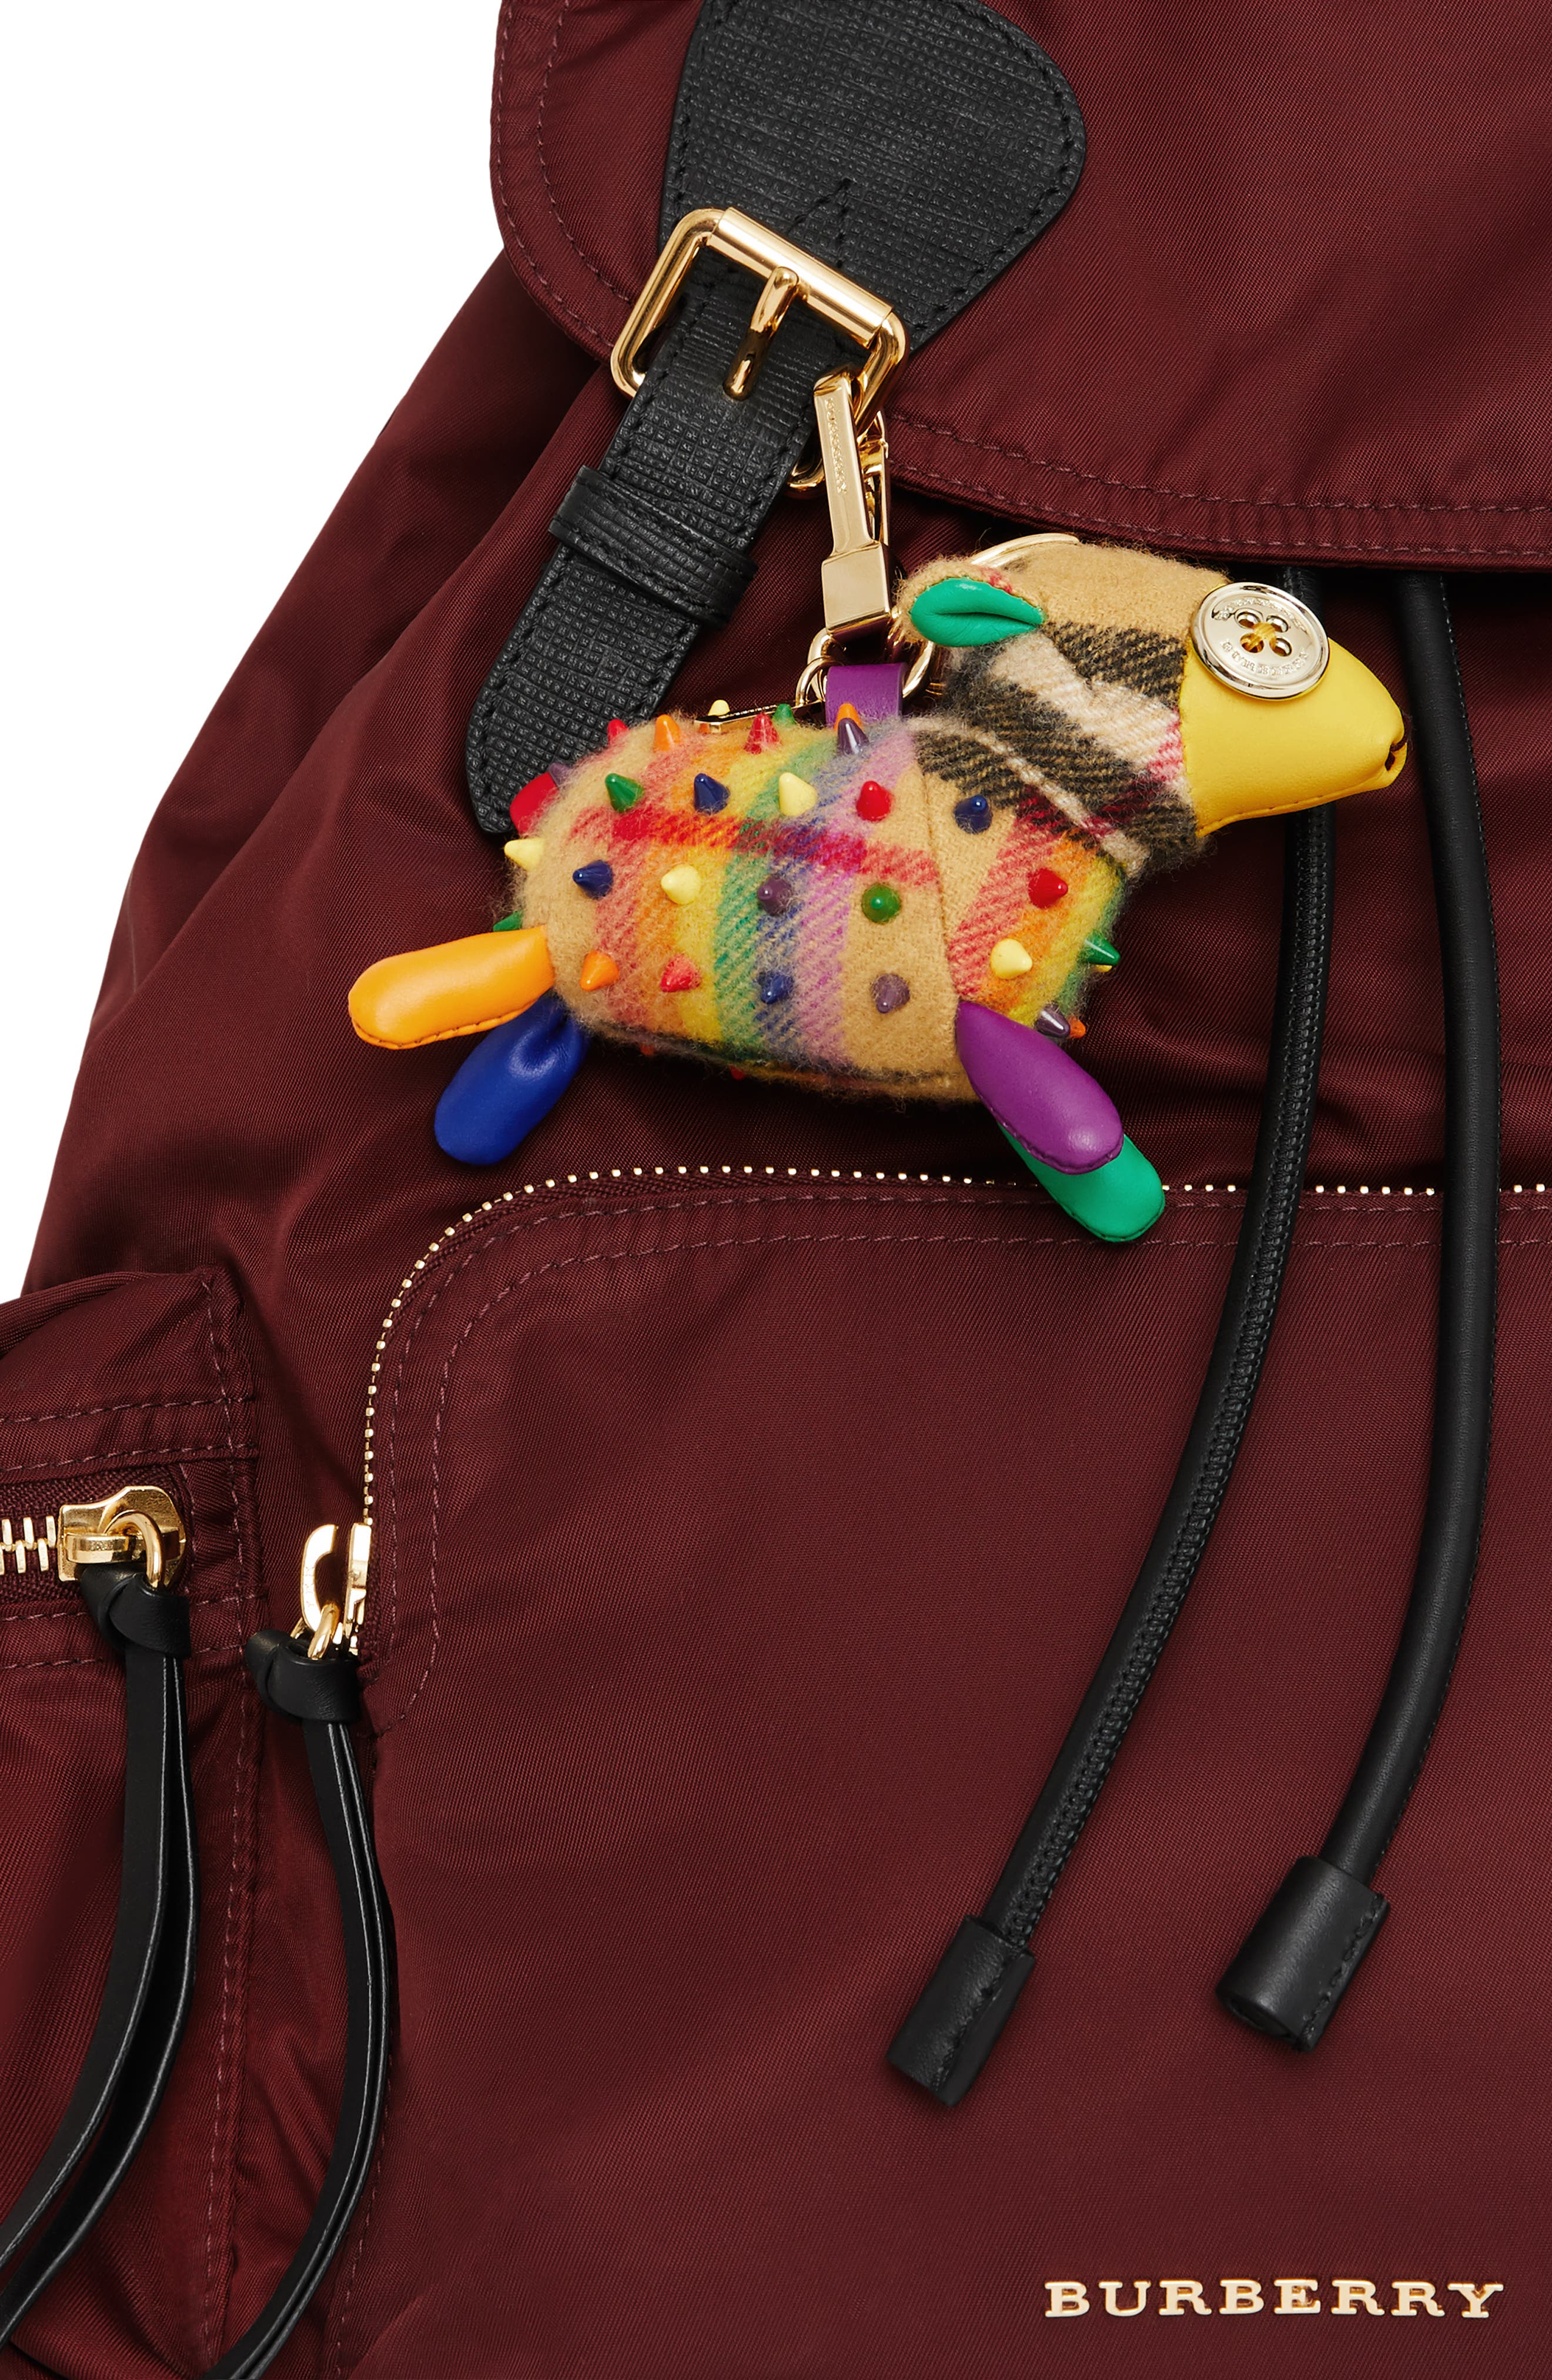 BURBERRY,                             Wendy the Sheep Rainbow Check Cashmere Bag Charm,                             Alternate thumbnail 2, color,                             250